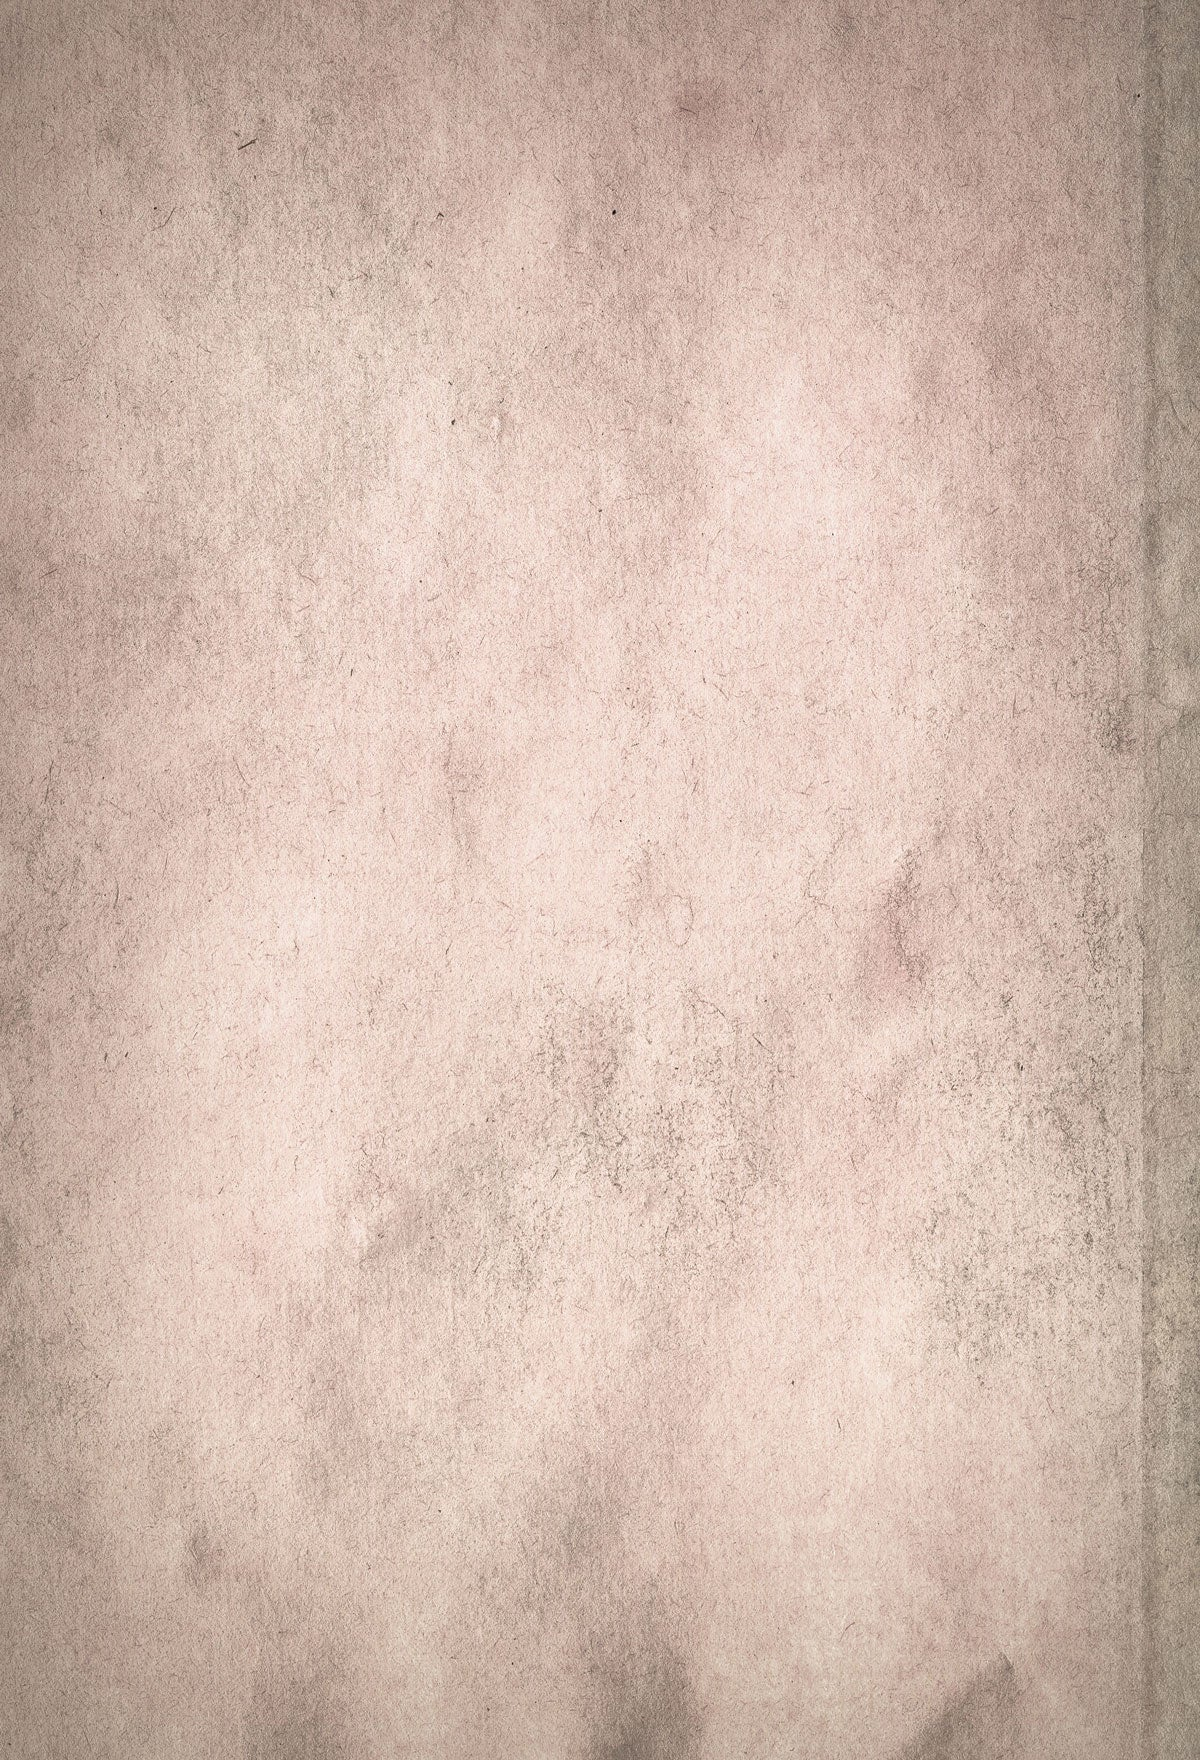 Fox Absract Texture Dull Light Pink Vinyl Backdrop for Photography-Foxbackdrop